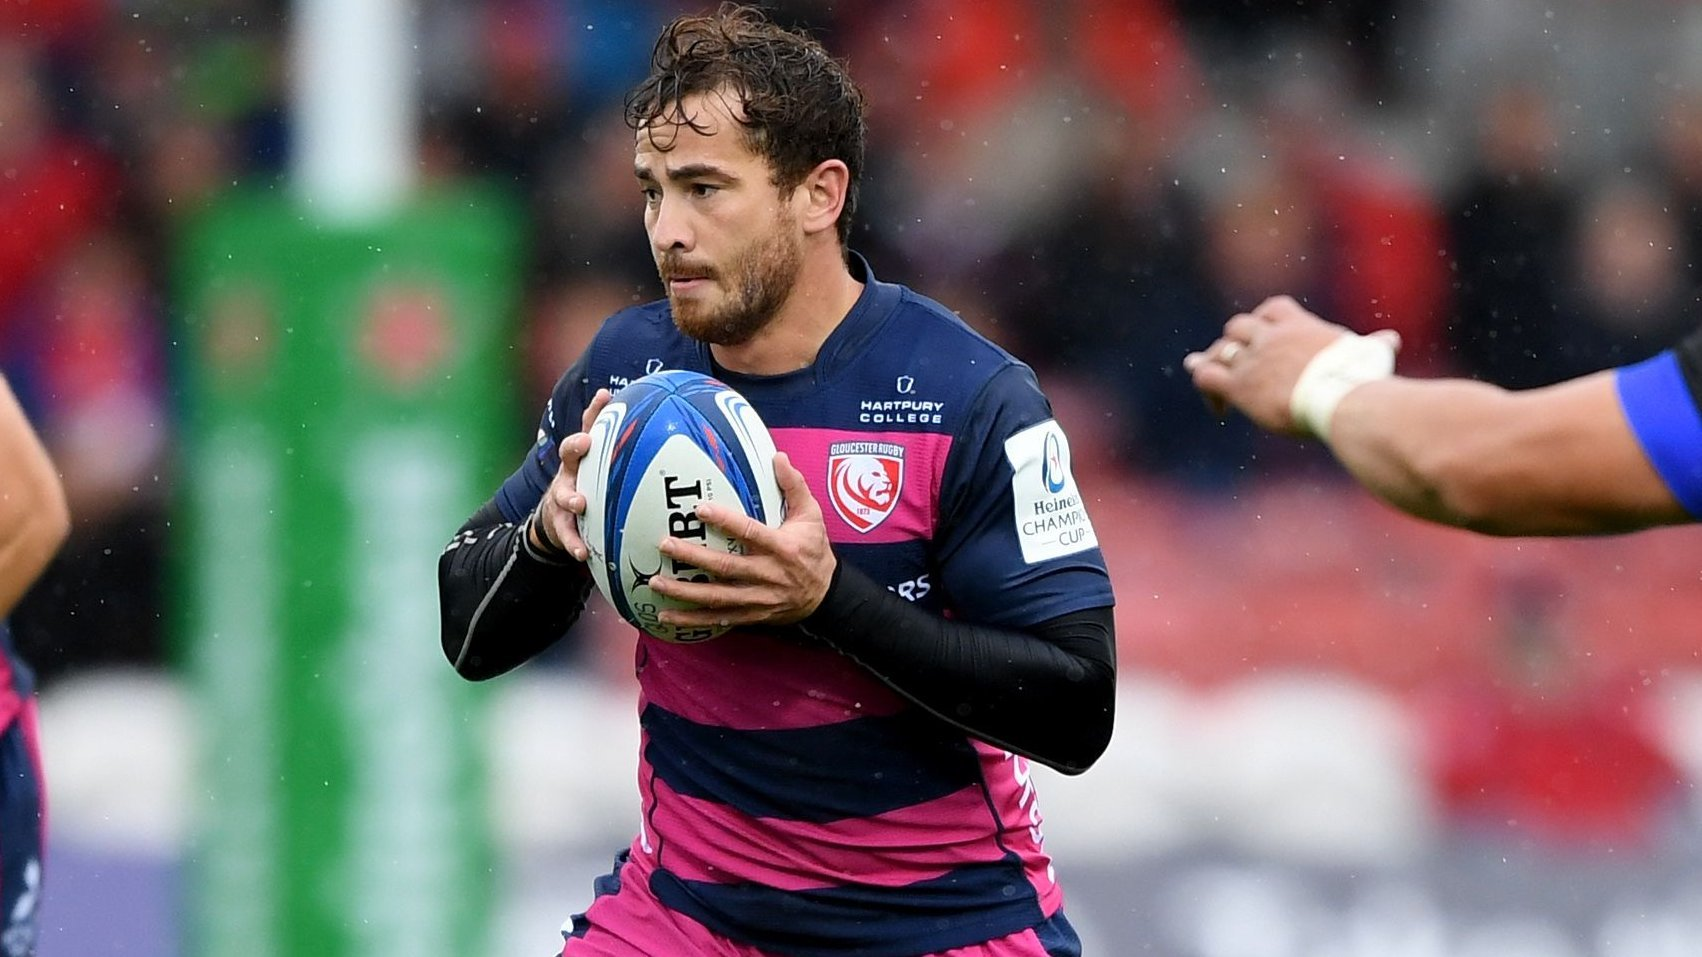 Cipriani impresses as Gloucester win in front of England coach Jones